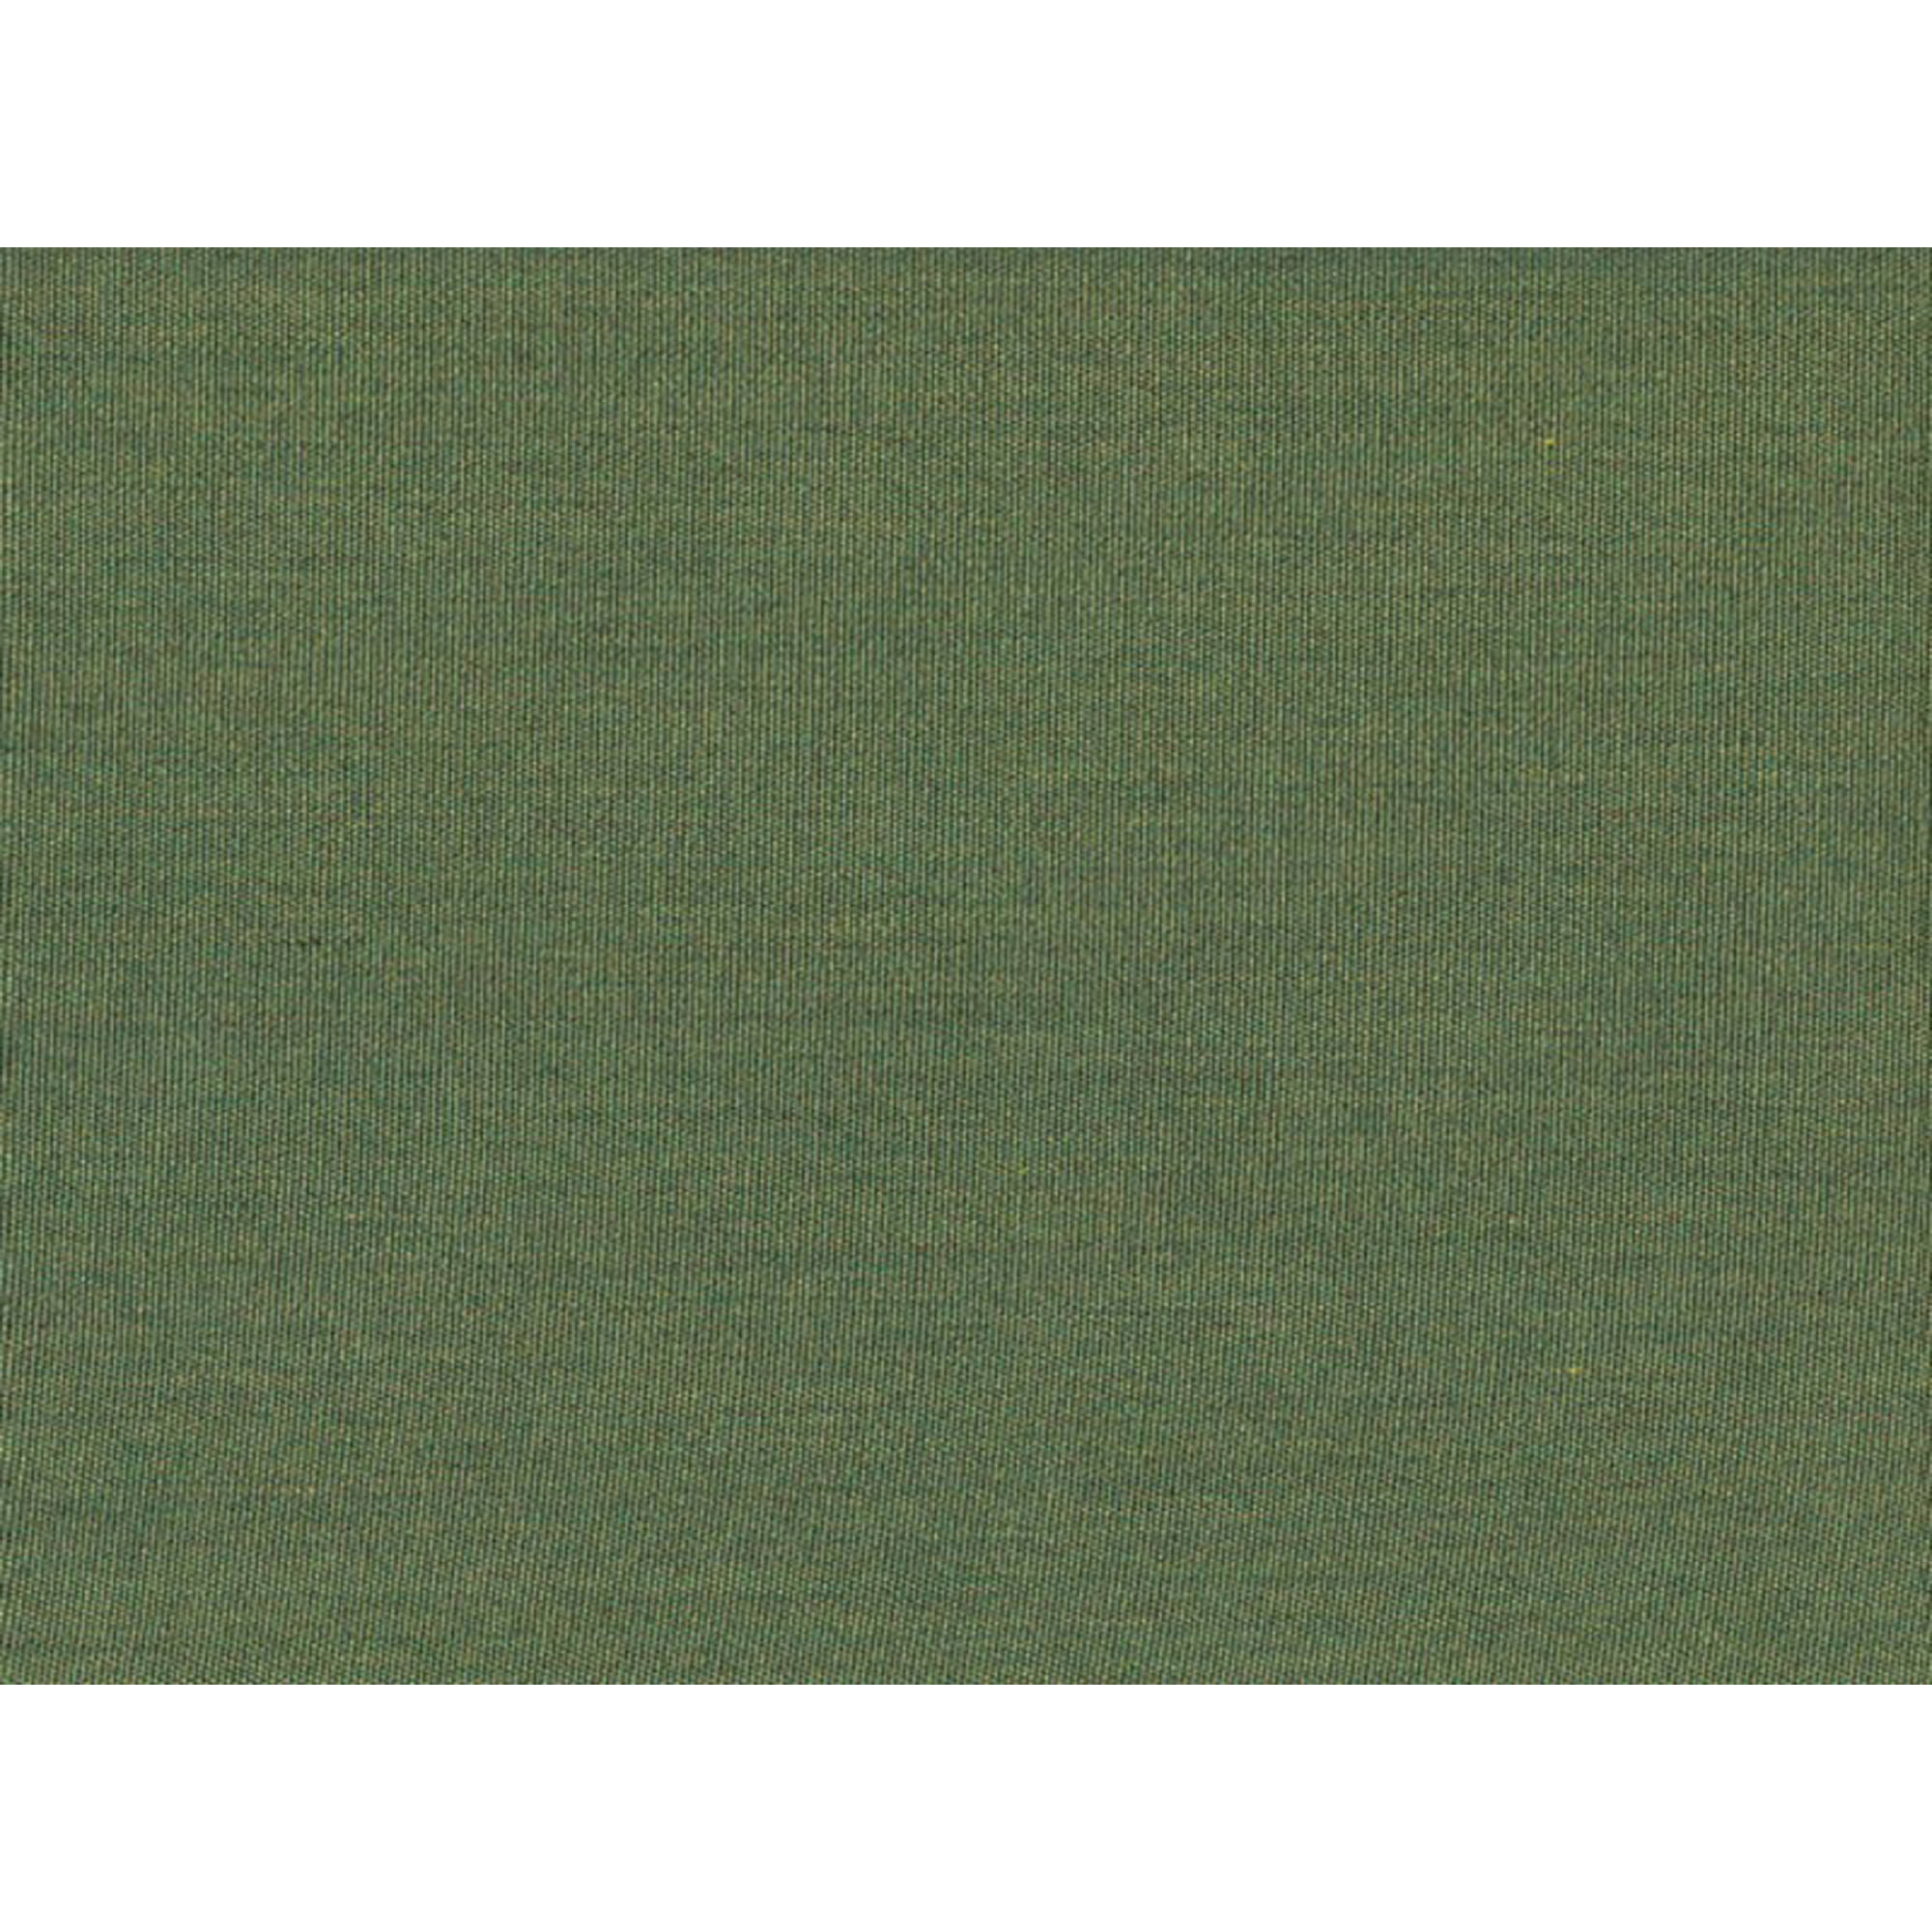 Jordan Manufacturing Outdoor Fabric by the Yard, Fern